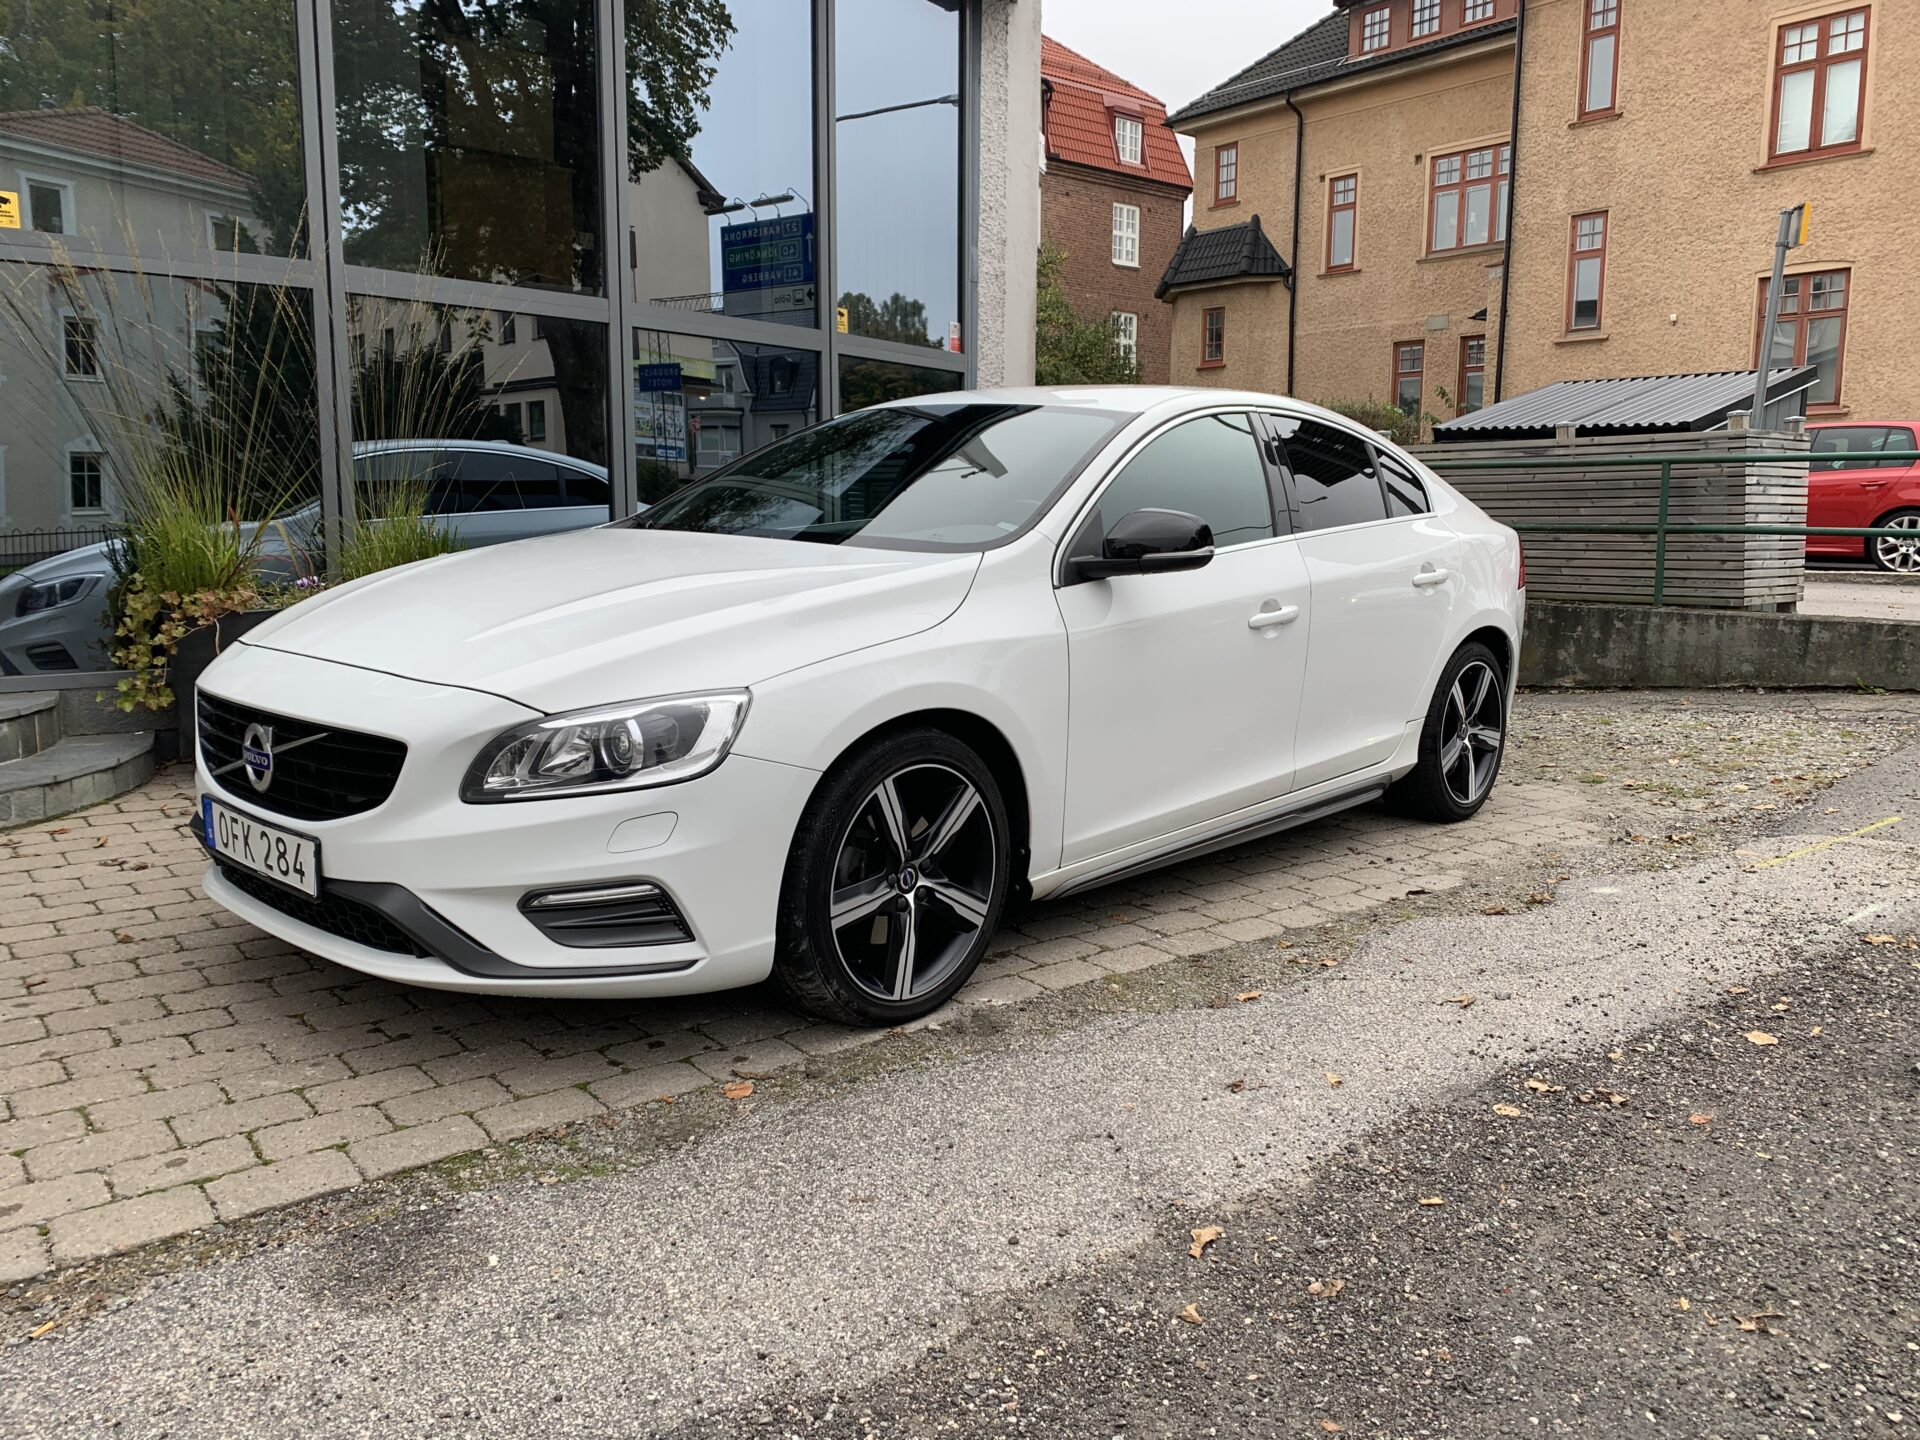 Volvo S60 D4 R-Design Polestar Optimisation